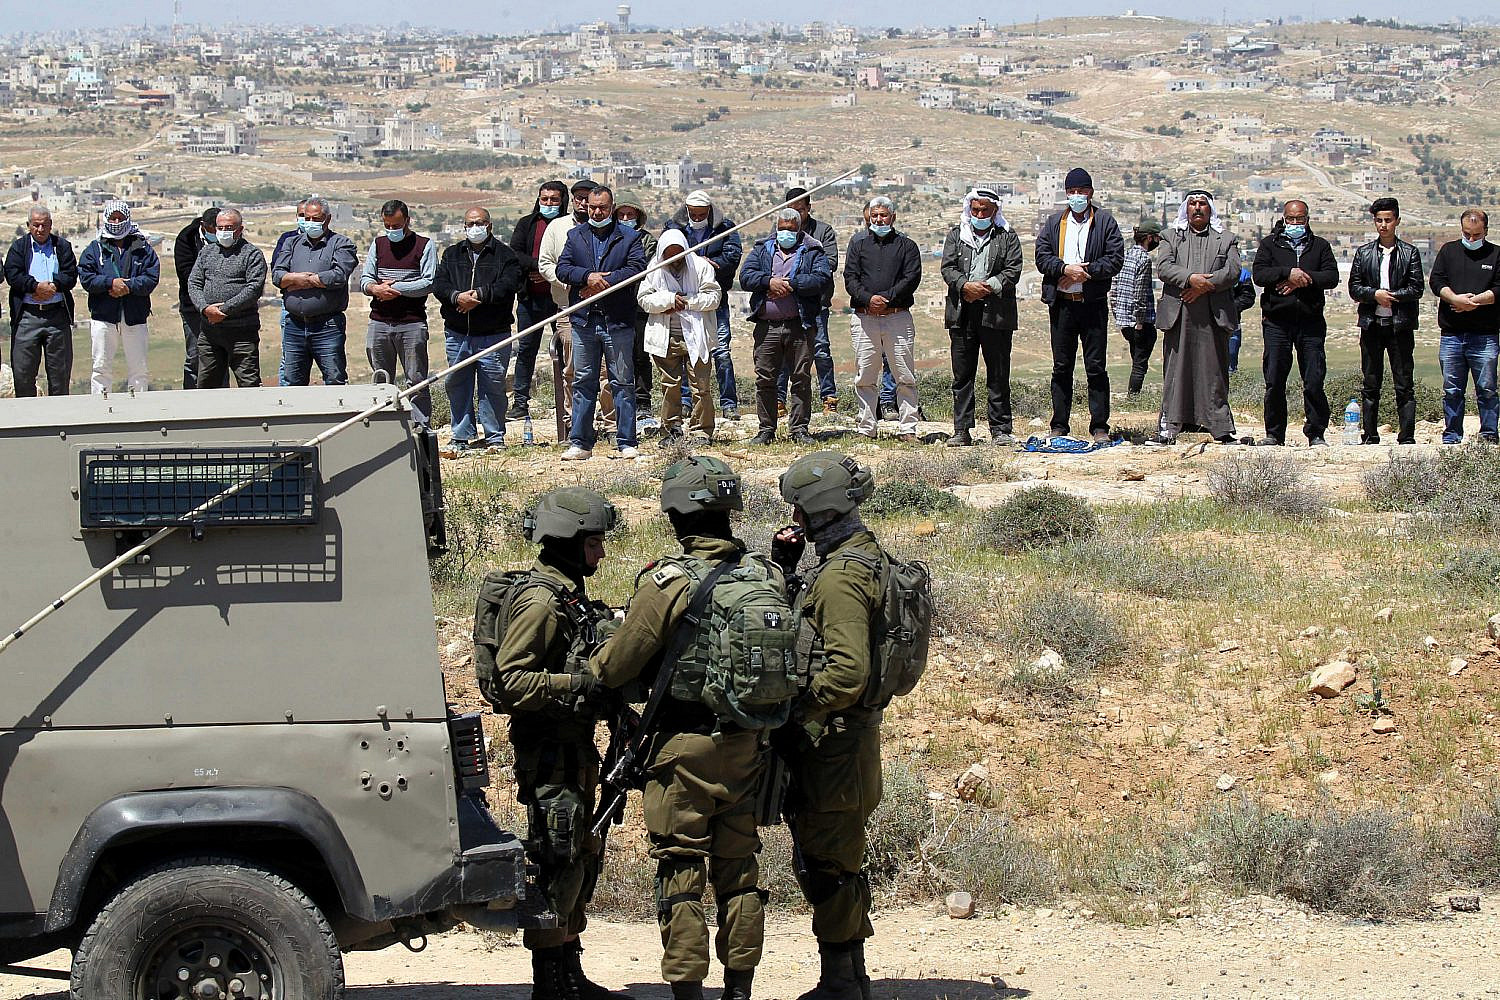 Israeli security forces stand while Palestinians pray before a protest against the settlements near Yatta, in the West Bank, April 9, 2021. (Wisam Hashlamoun/Flash90)